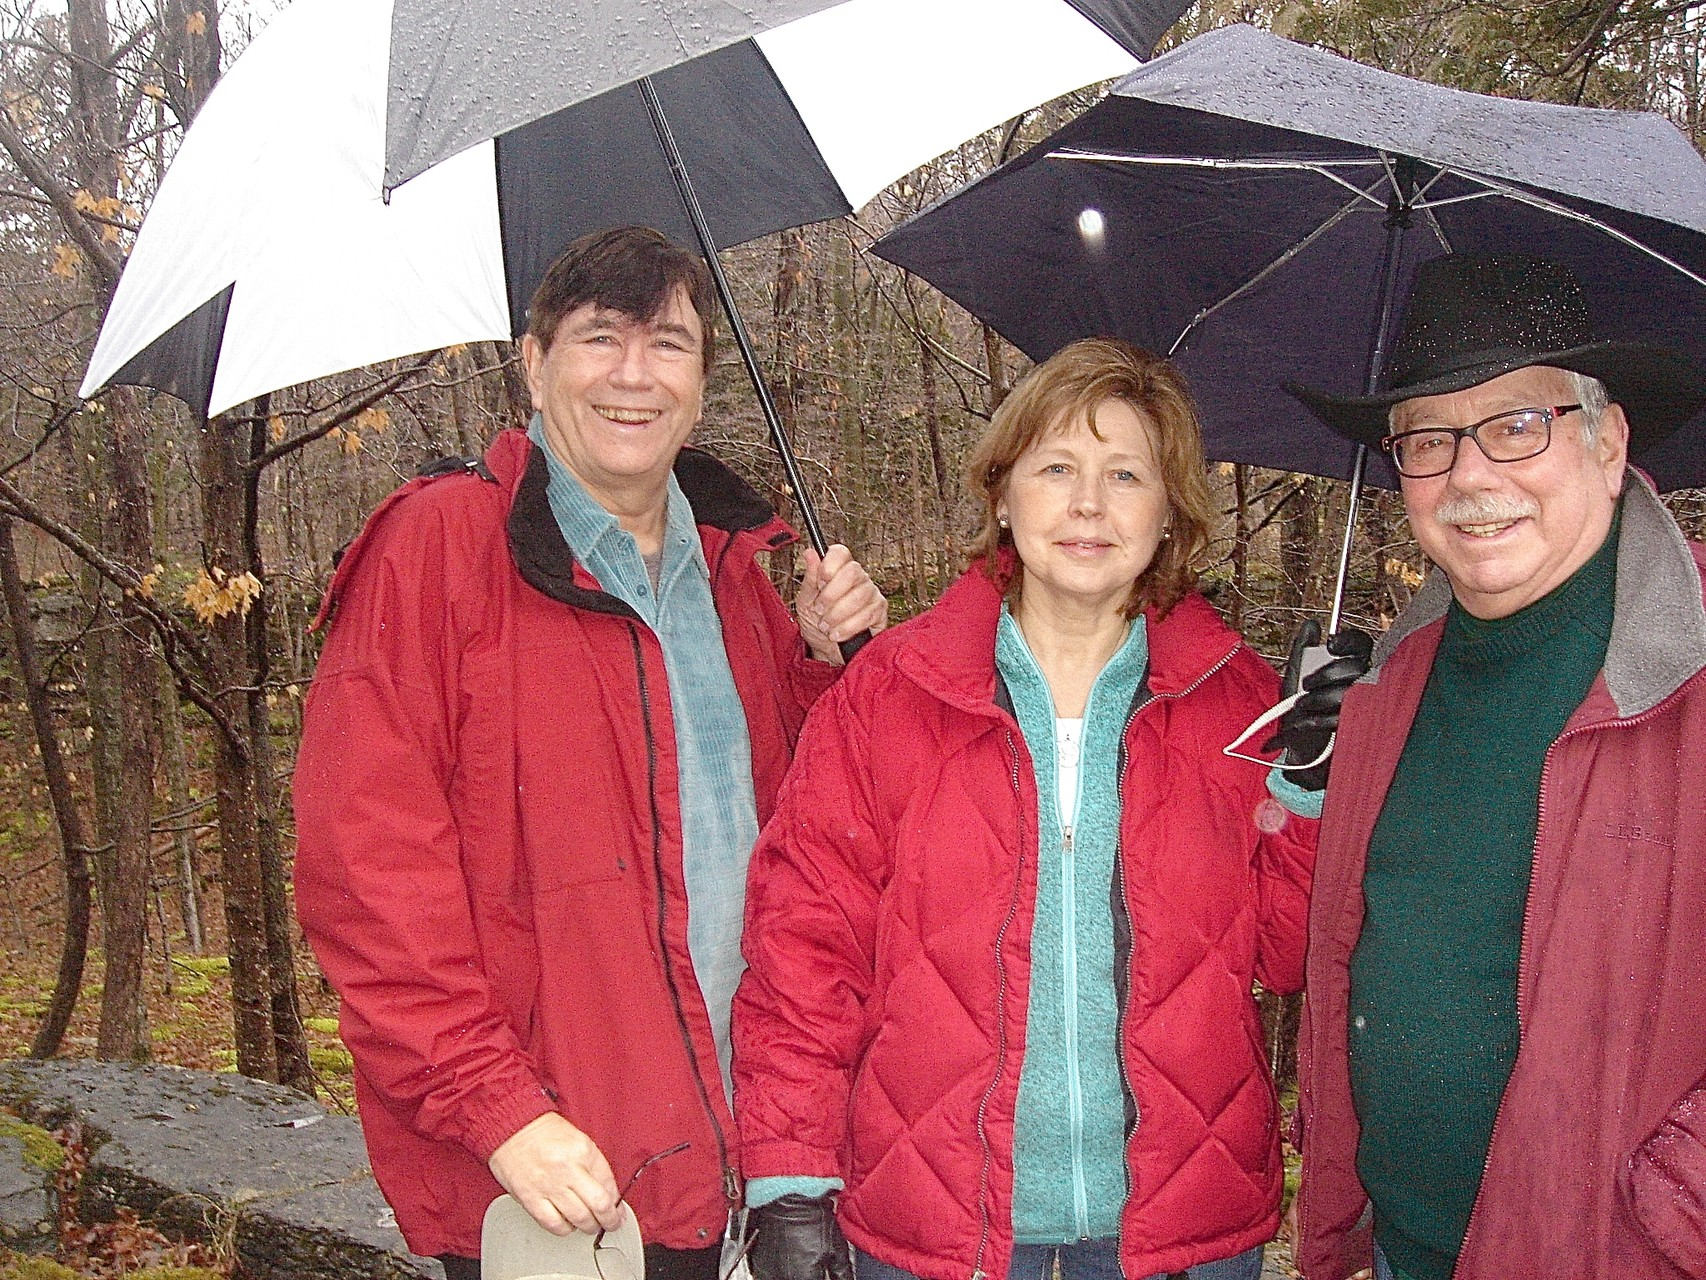 John, Barbara & Don hiking at Clark Reservation, 12-27-15